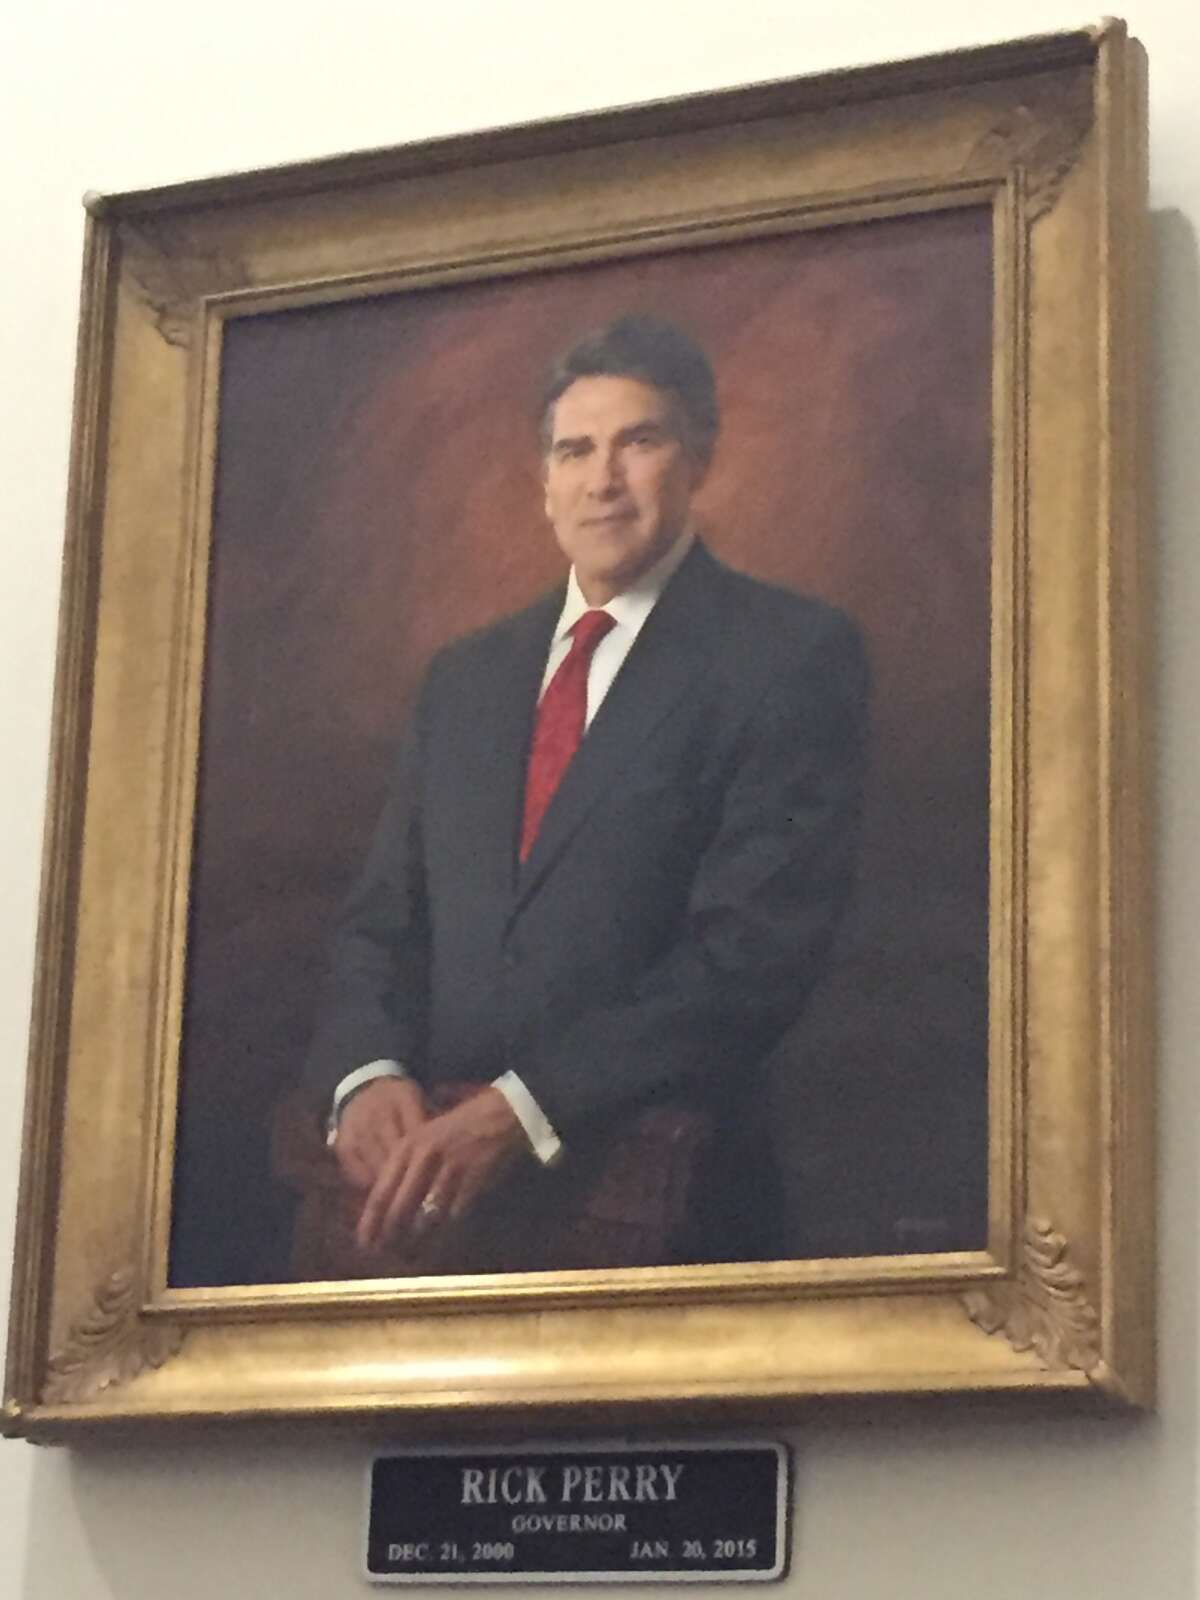 Rick Perry's official state portrait was unveiled Friday, May 6, 2016, in Austin, but another likeness of the former Texas governor took the Internet by storm in 2014 when he was booked into the Travis County Jail.